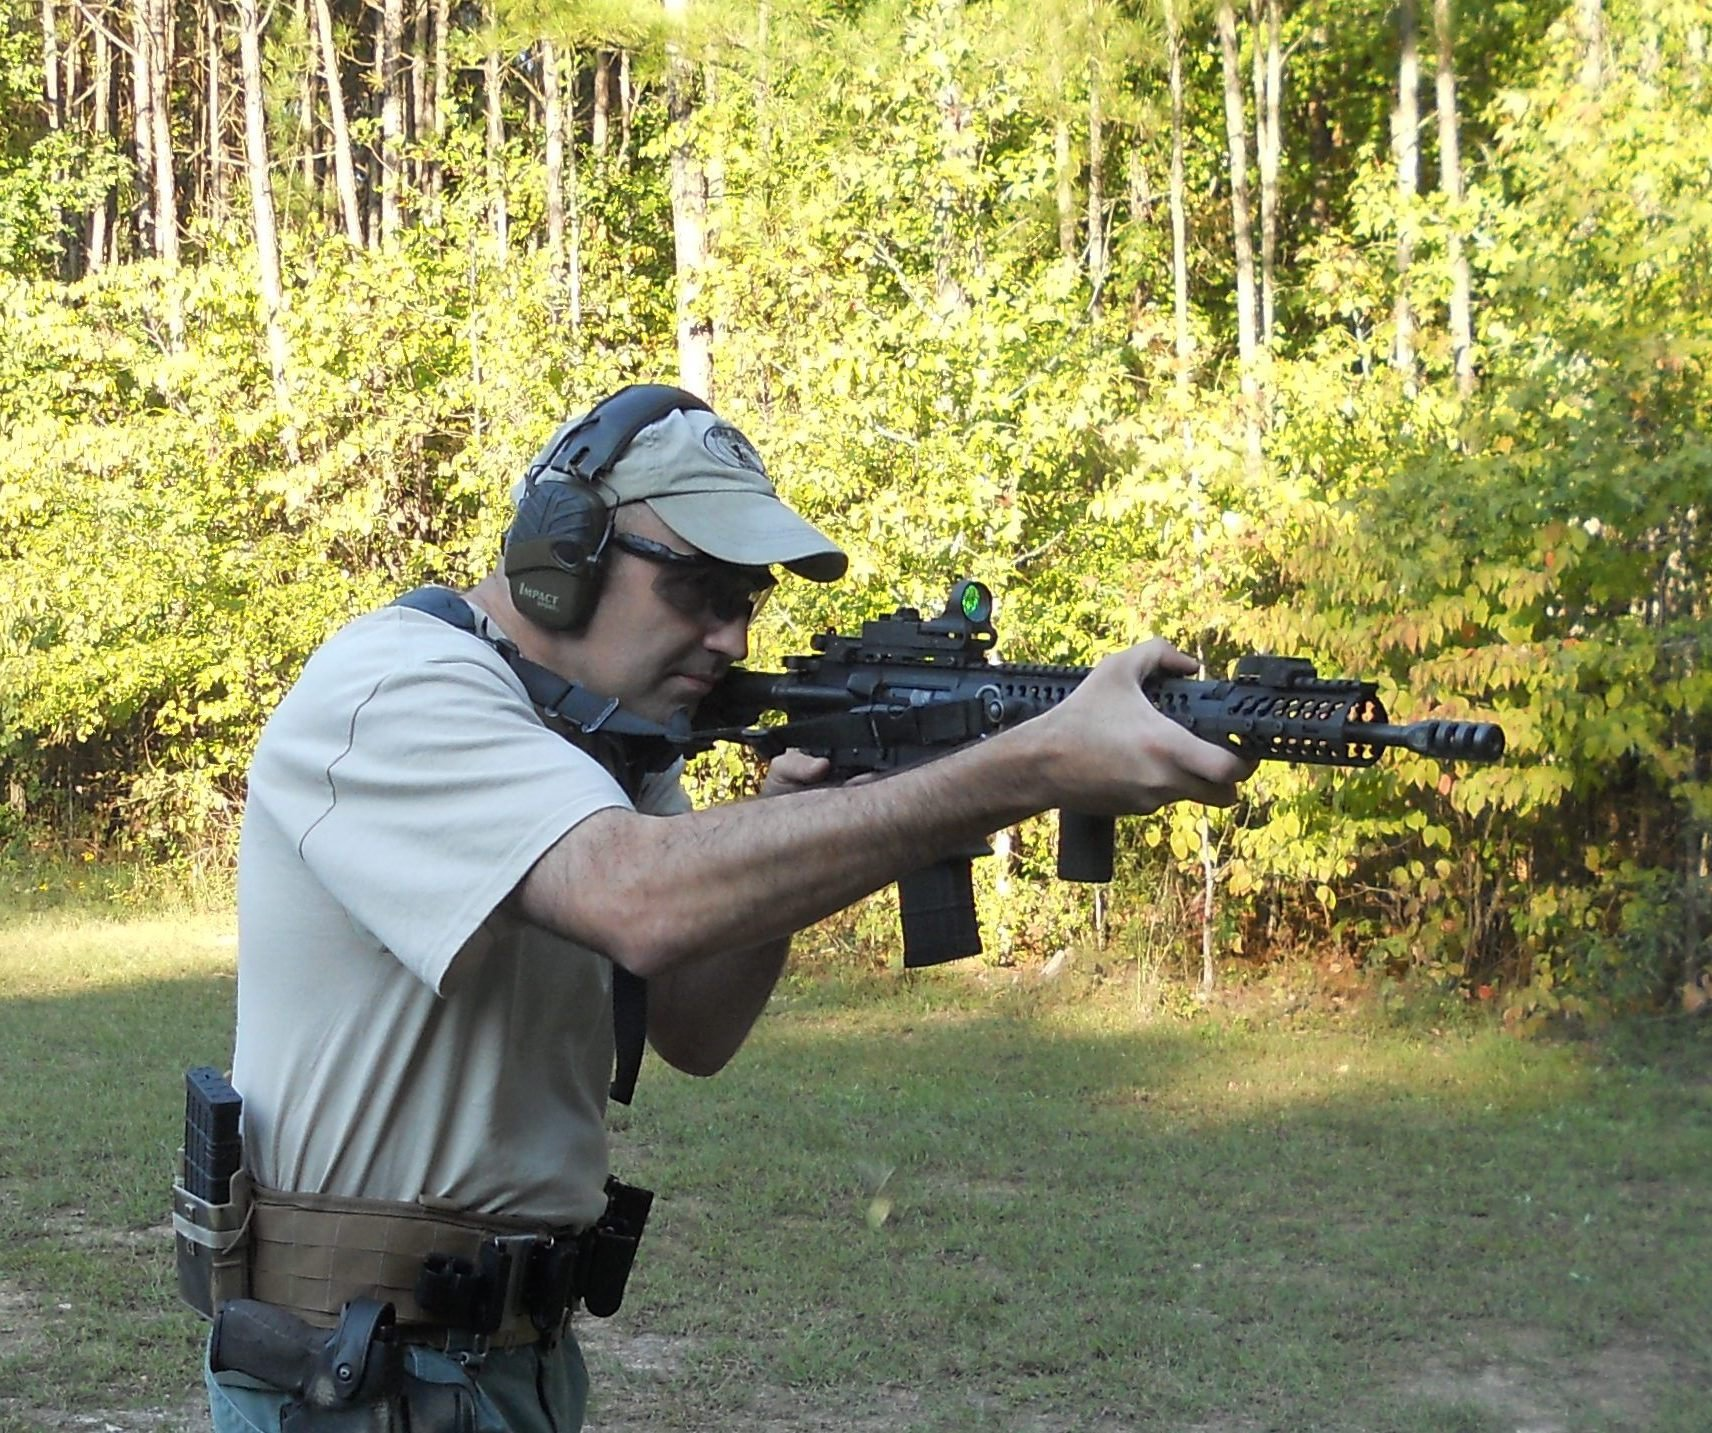 Tactical Rifle Slings for Close Quarters Battle/Close Quarters Combat (CQB/CQC) and Tactical 3-Gun Competition Applications: Finding the Right One for You!